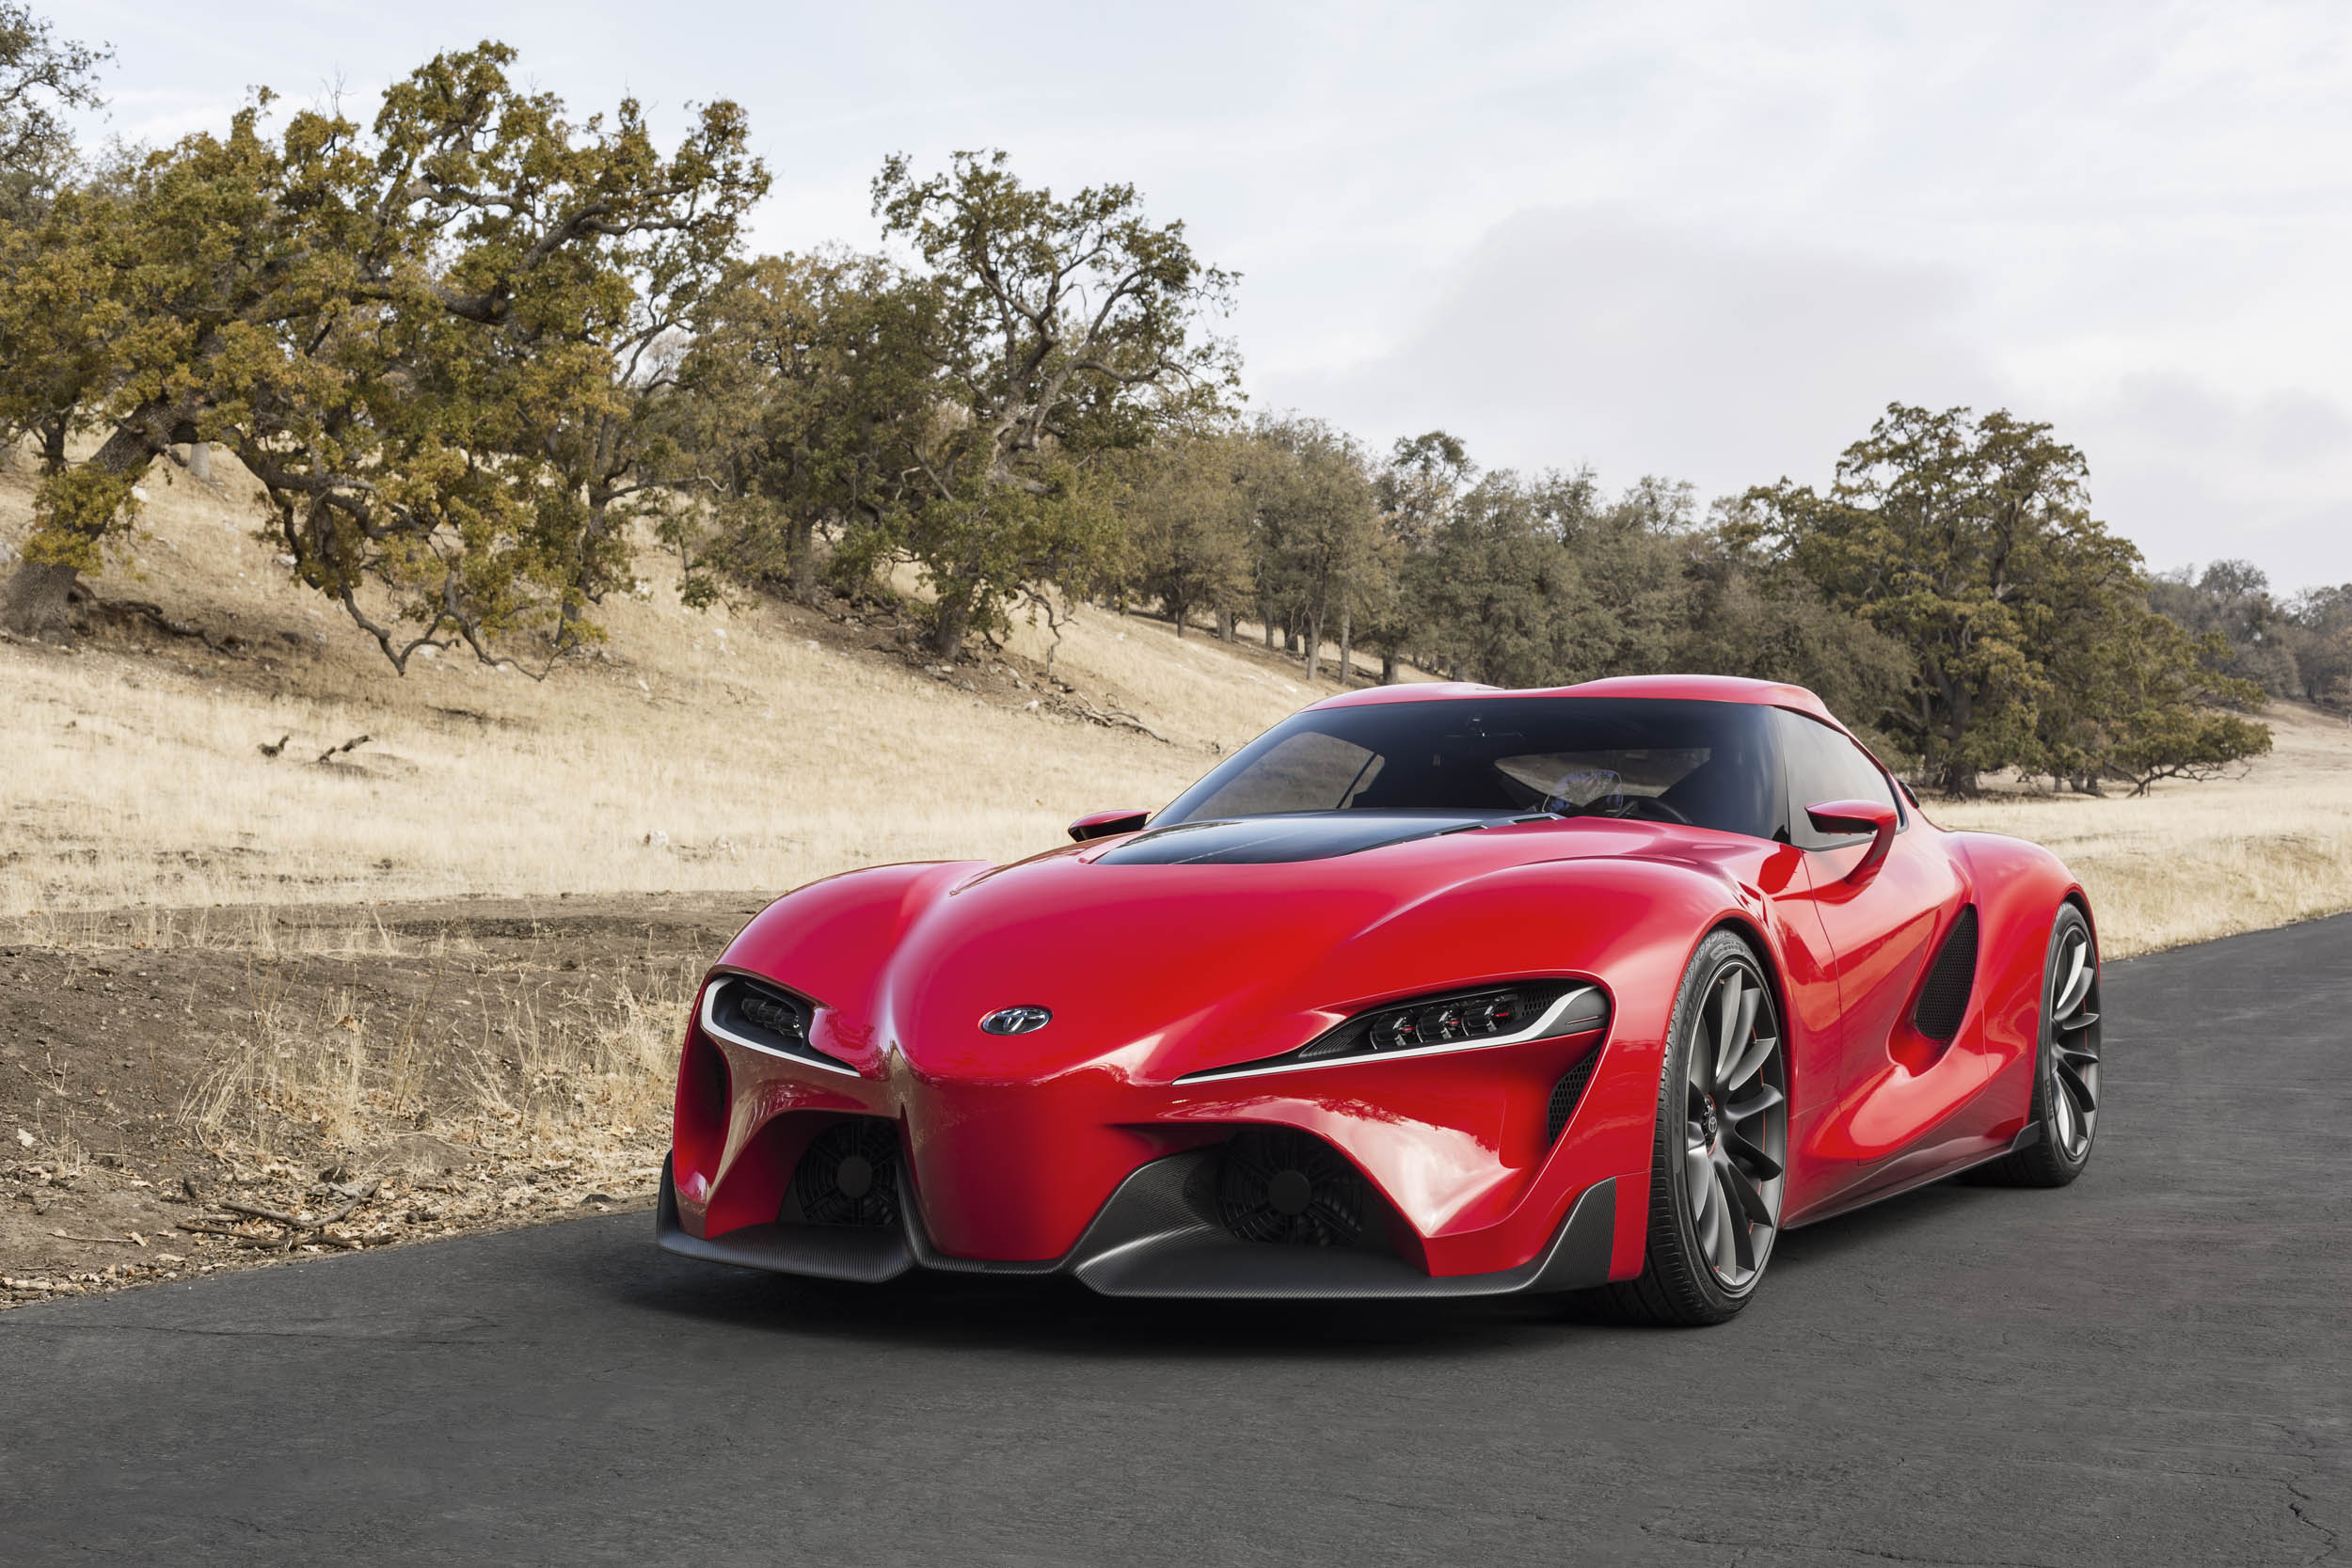 Toyota FT-1 concept front 3/4